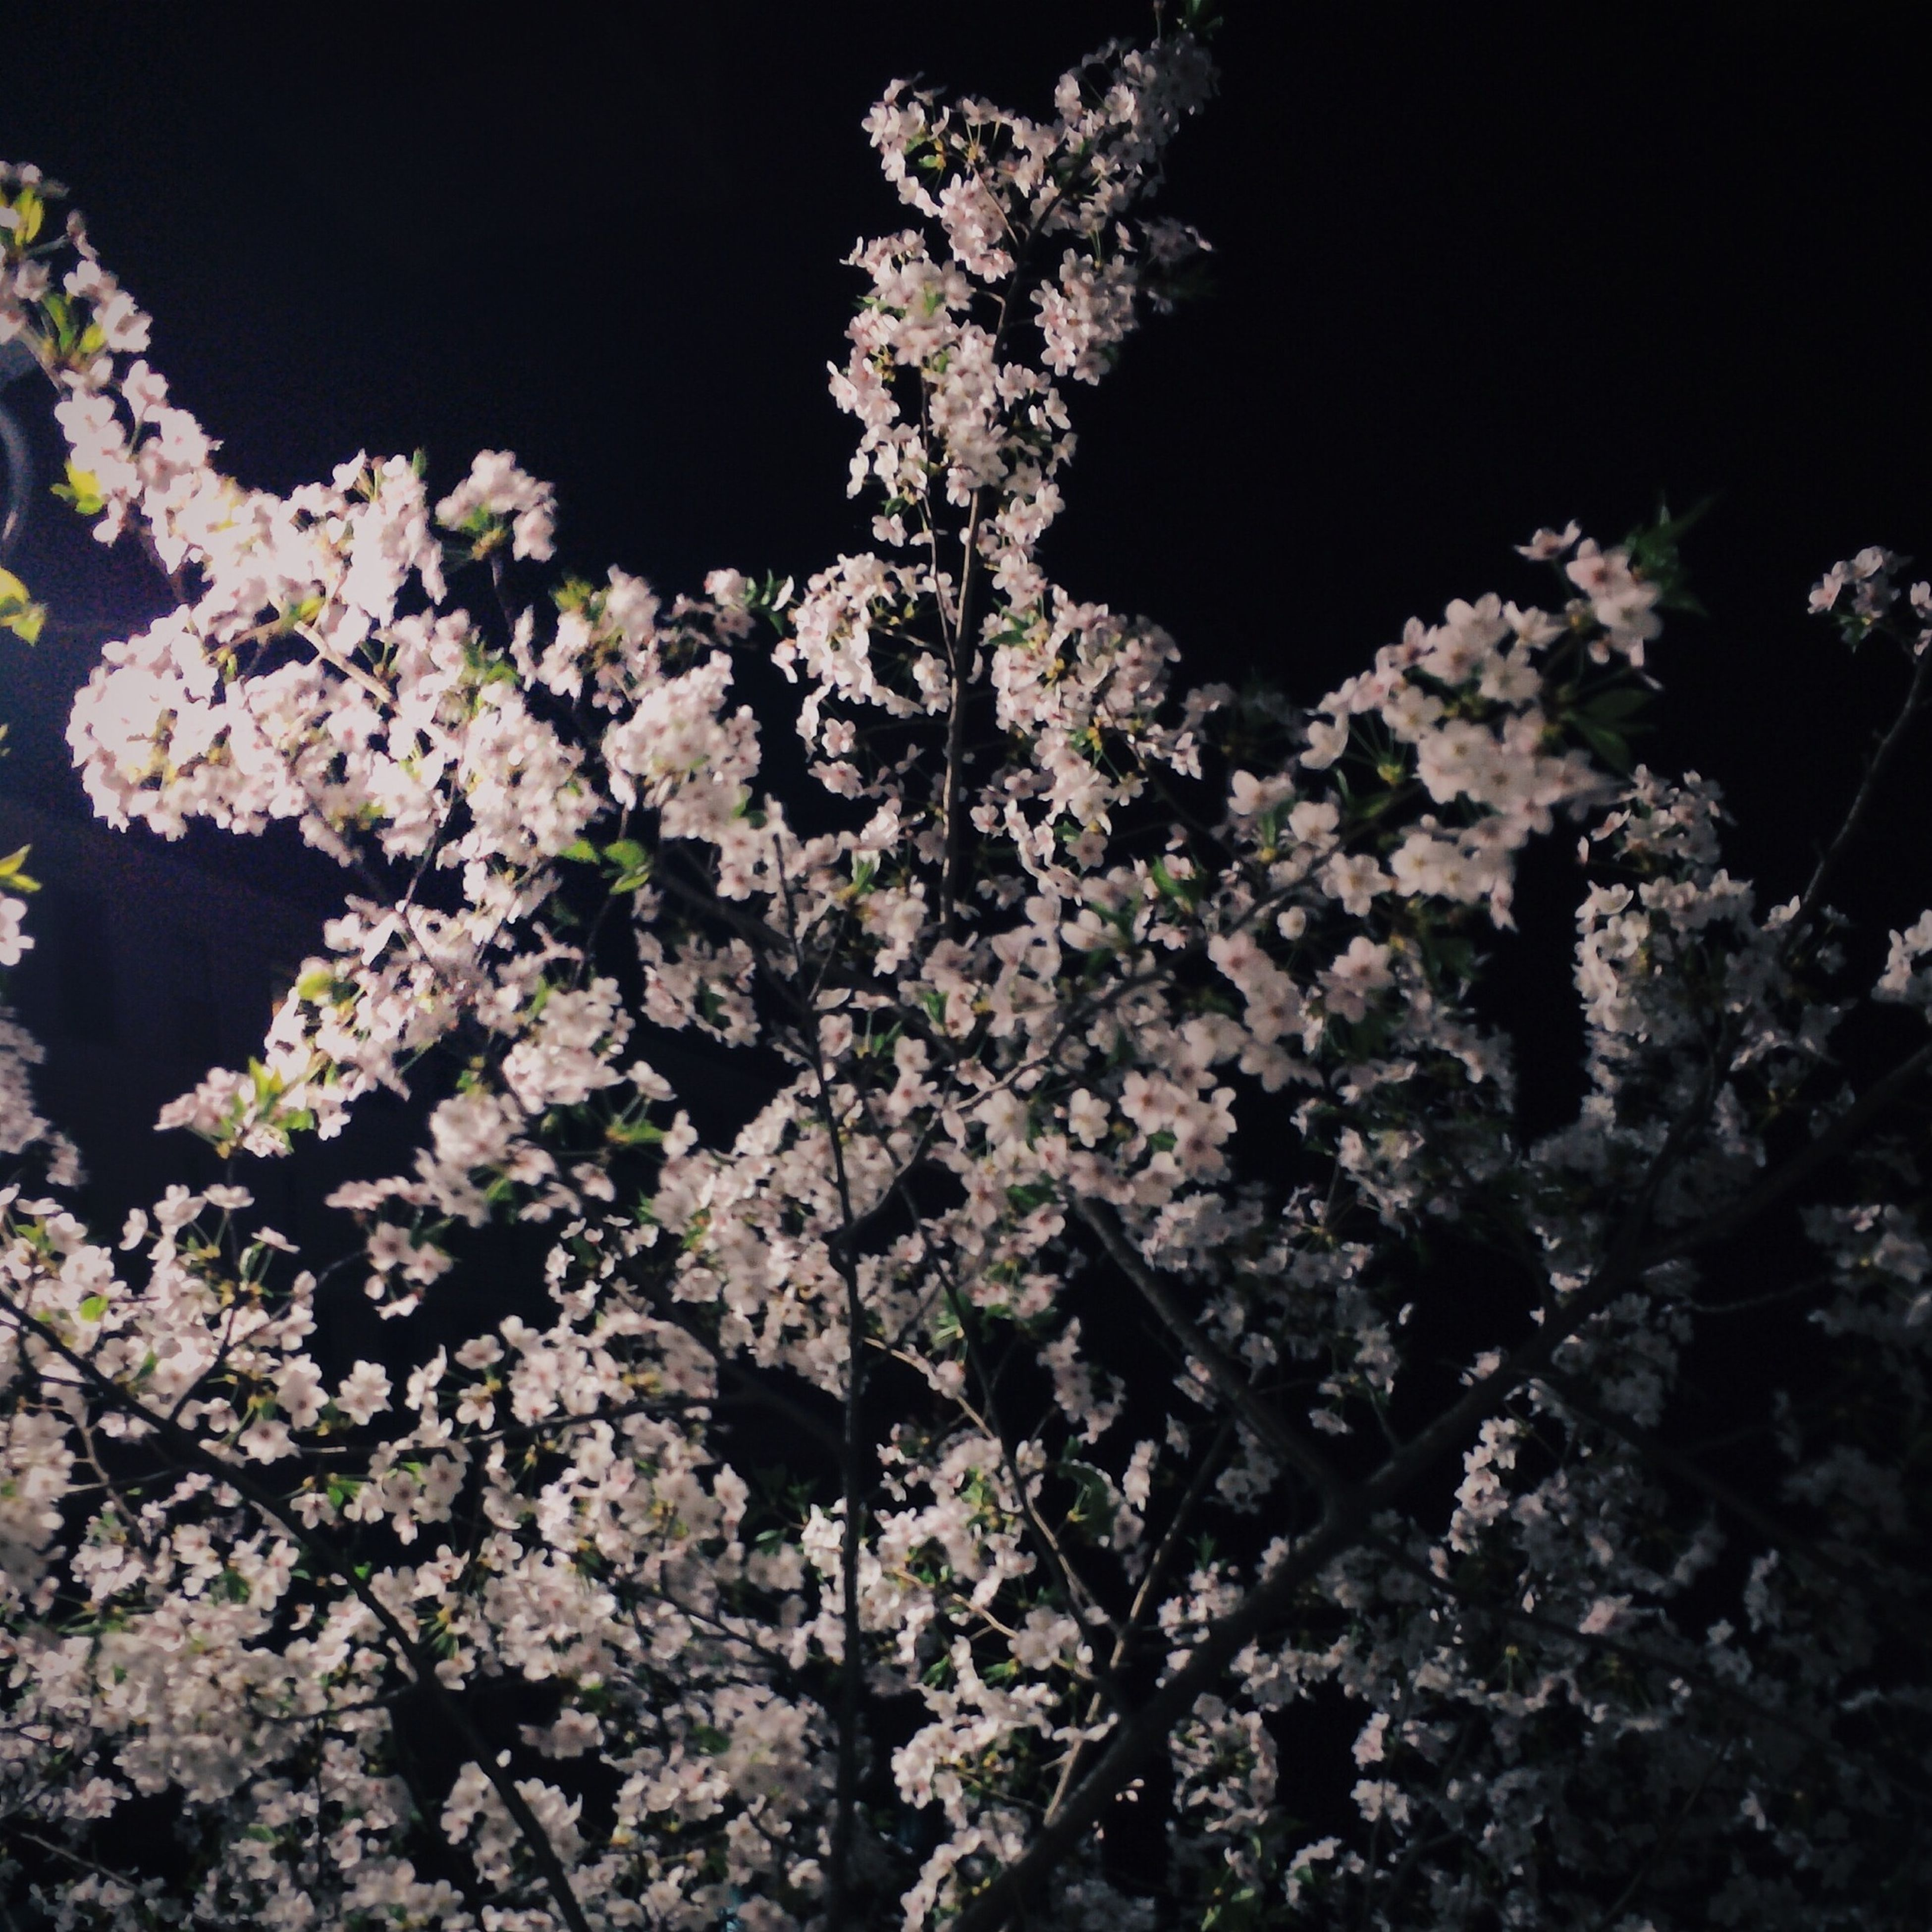 flower, tree, growth, low angle view, branch, beauty in nature, night, nature, freshness, fragility, blossom, clear sky, in bloom, outdoors, cherry blossom, white color, blooming, cherry tree, no people, plant